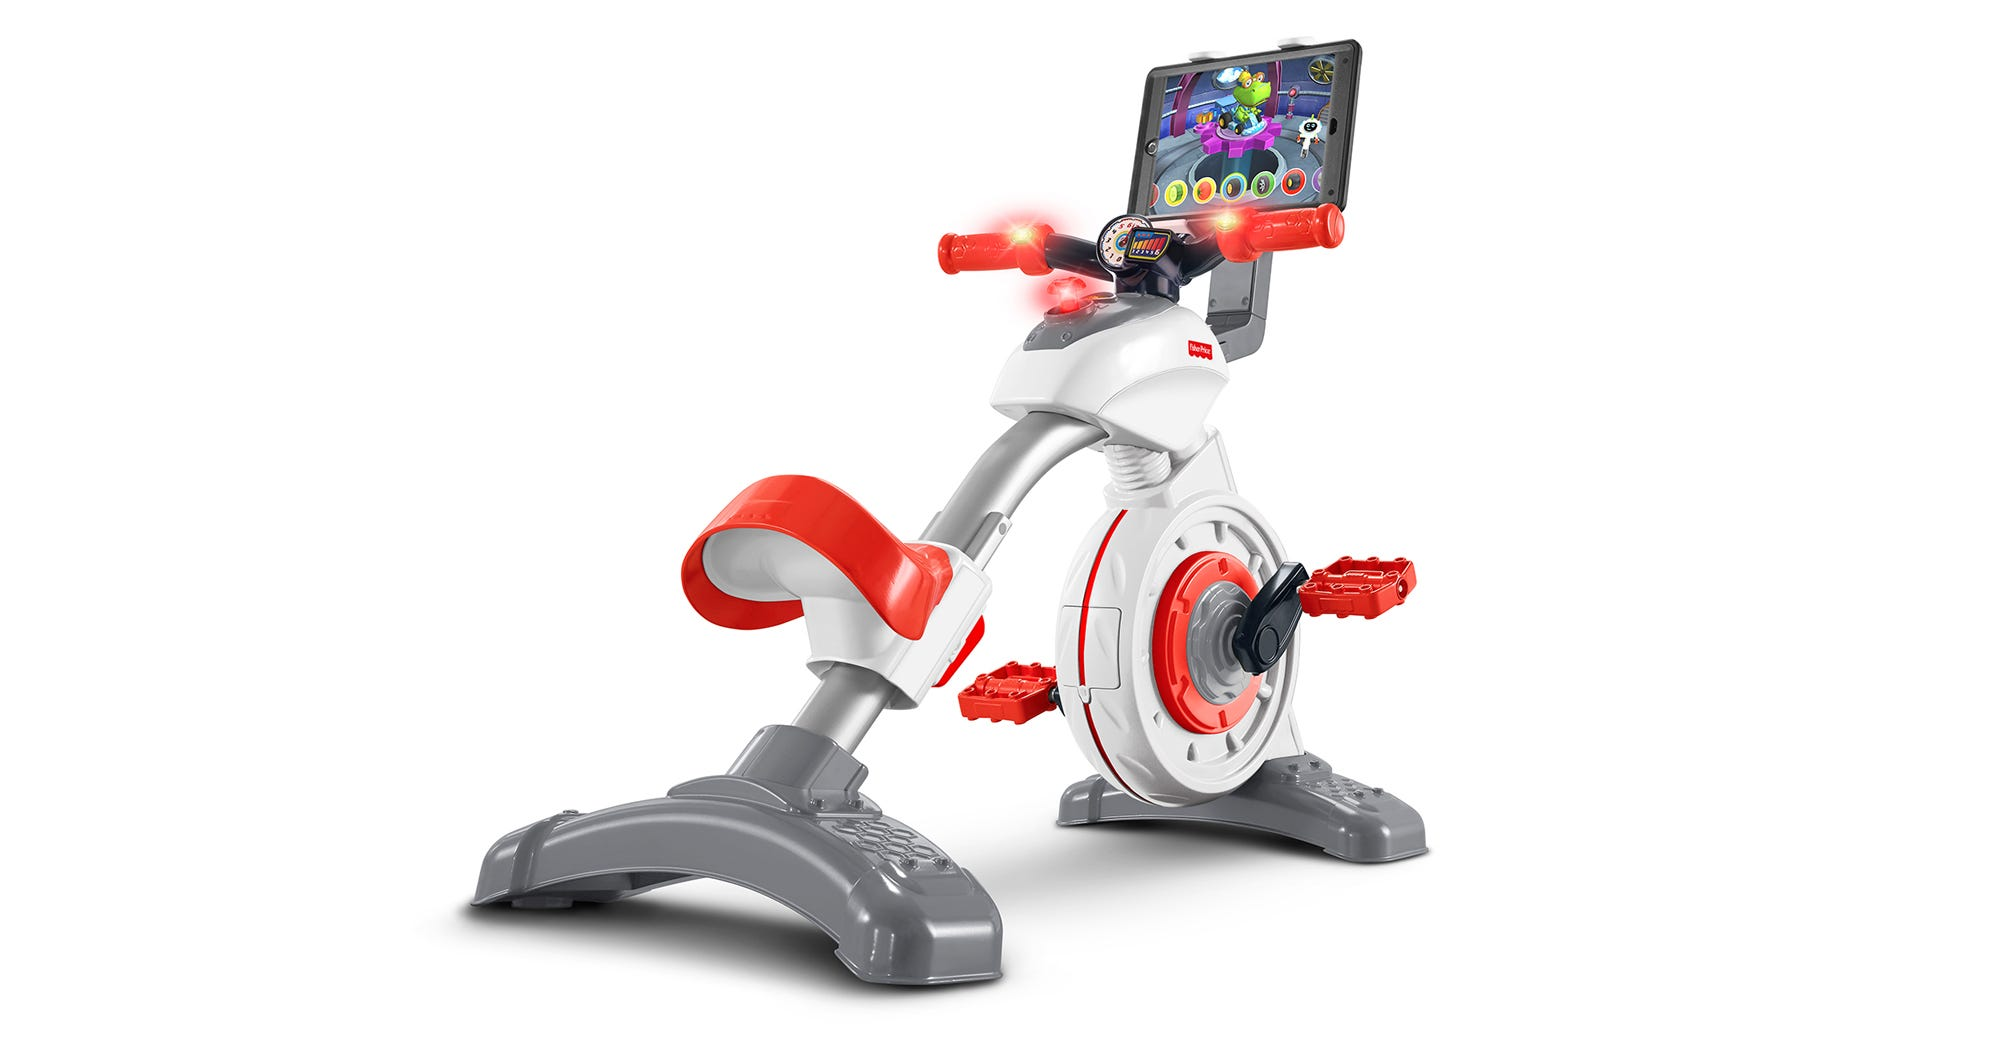 Fisher Price Child Exercise Bike, Childhood Obesity